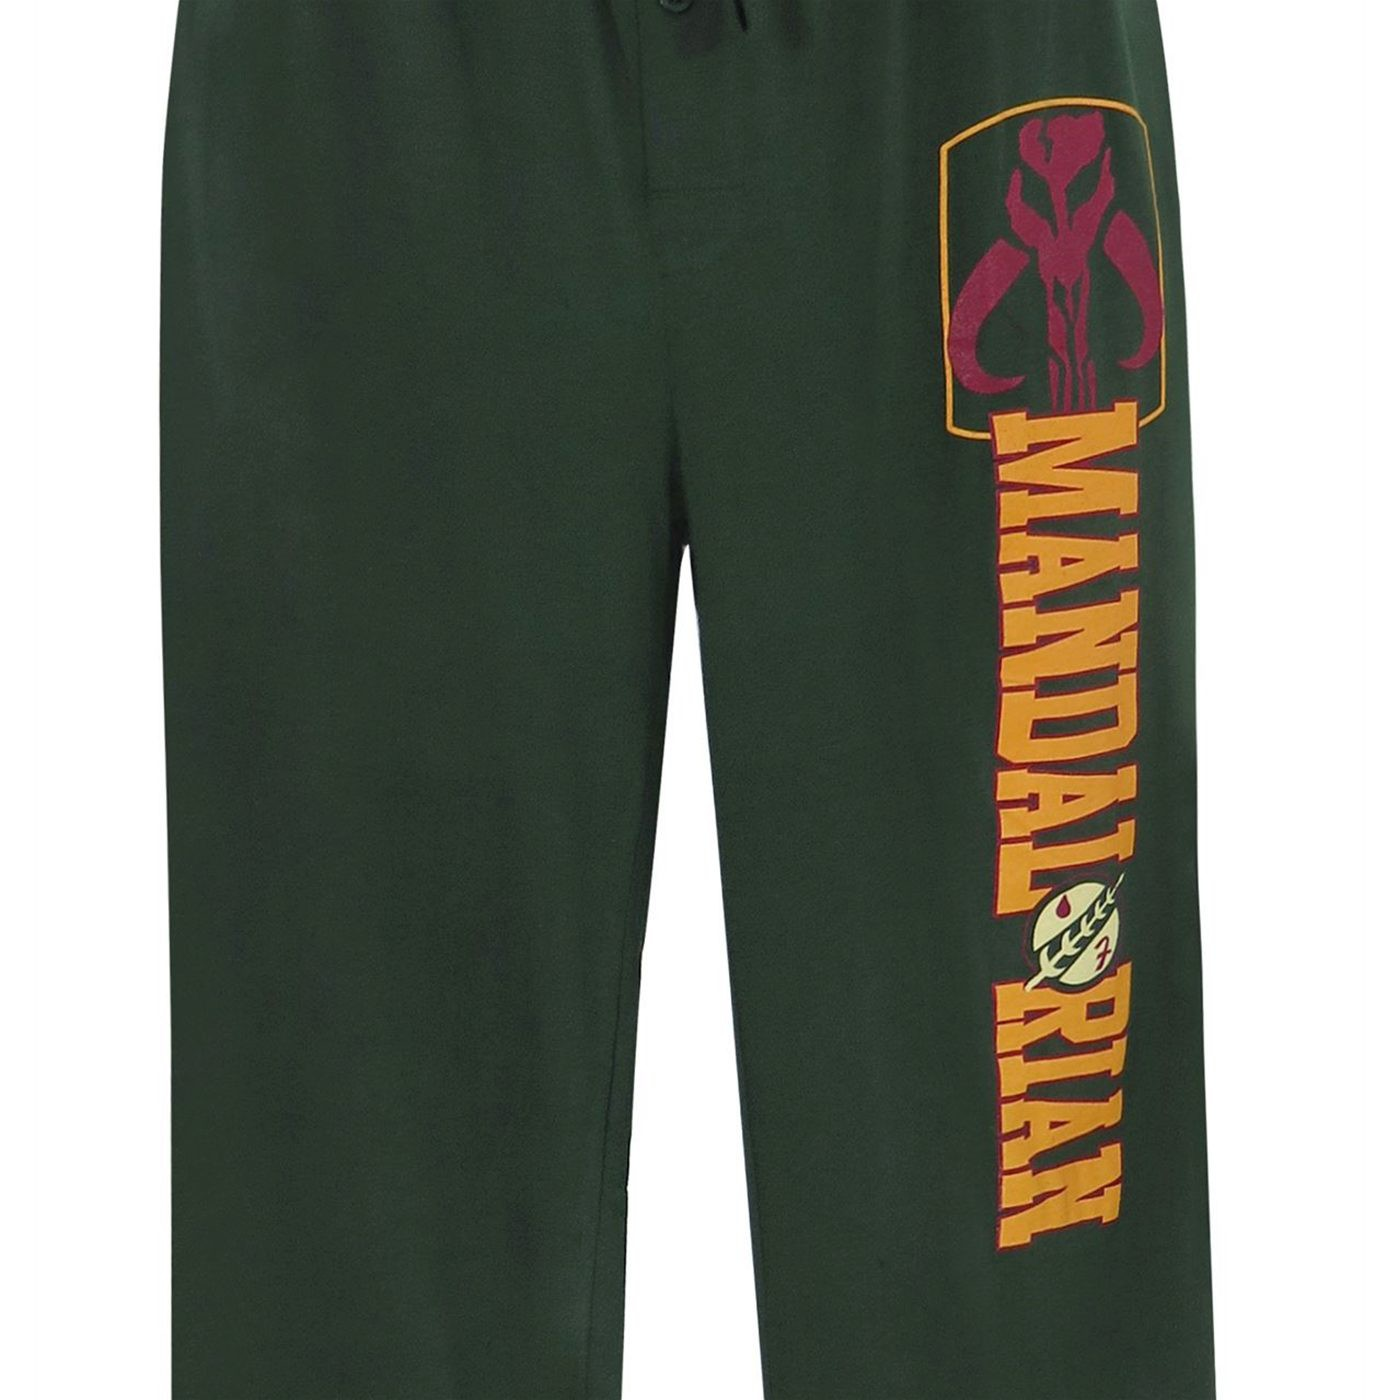 Star Wars Boba Fett Mandalorian Men's Pajama Pants